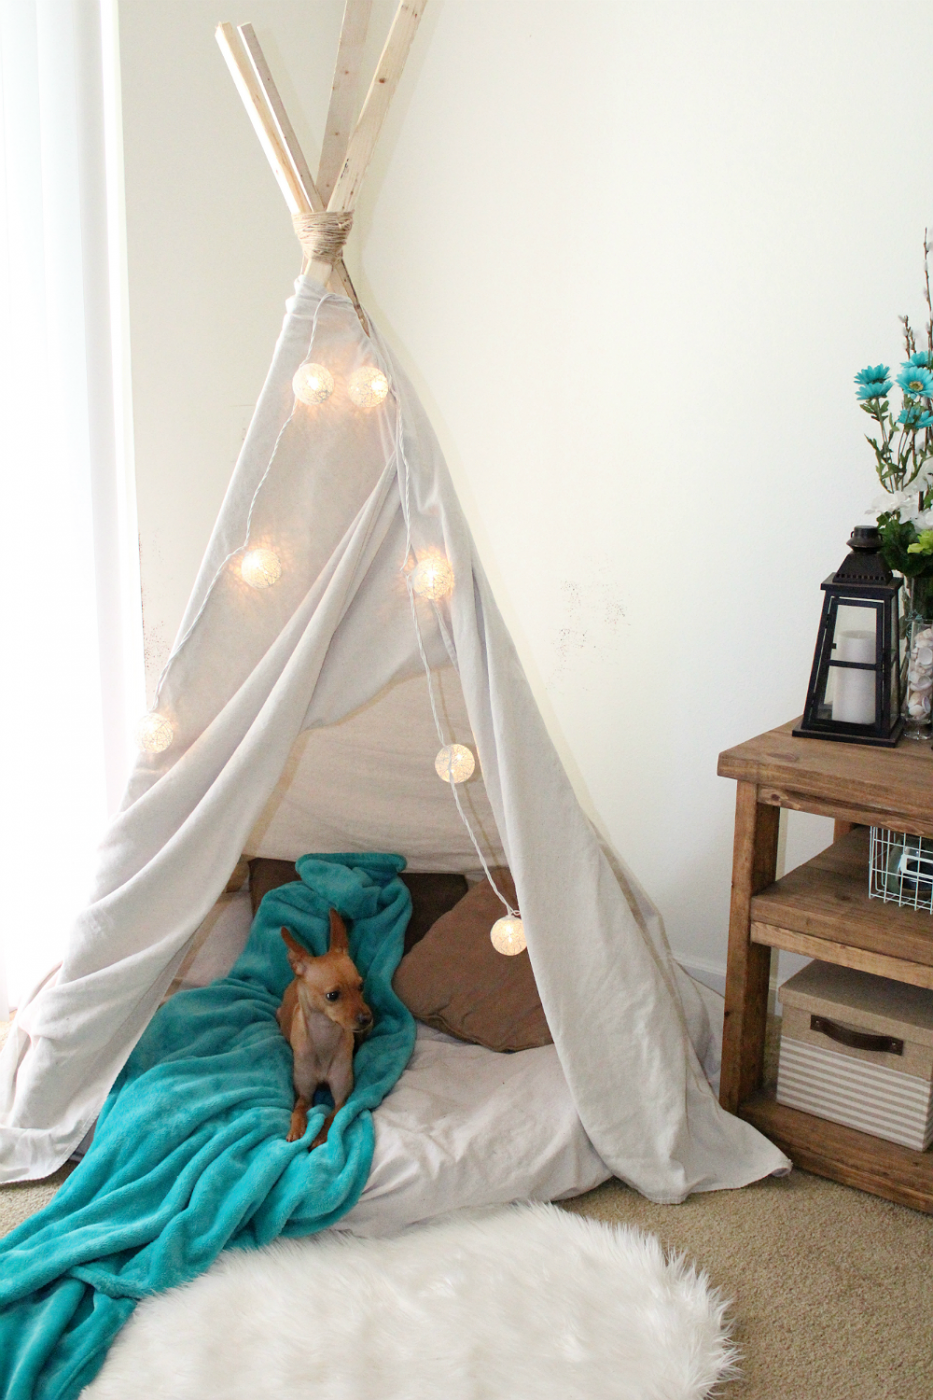 Diy 10 Minute Teepee For Under 16 Sweet Teal